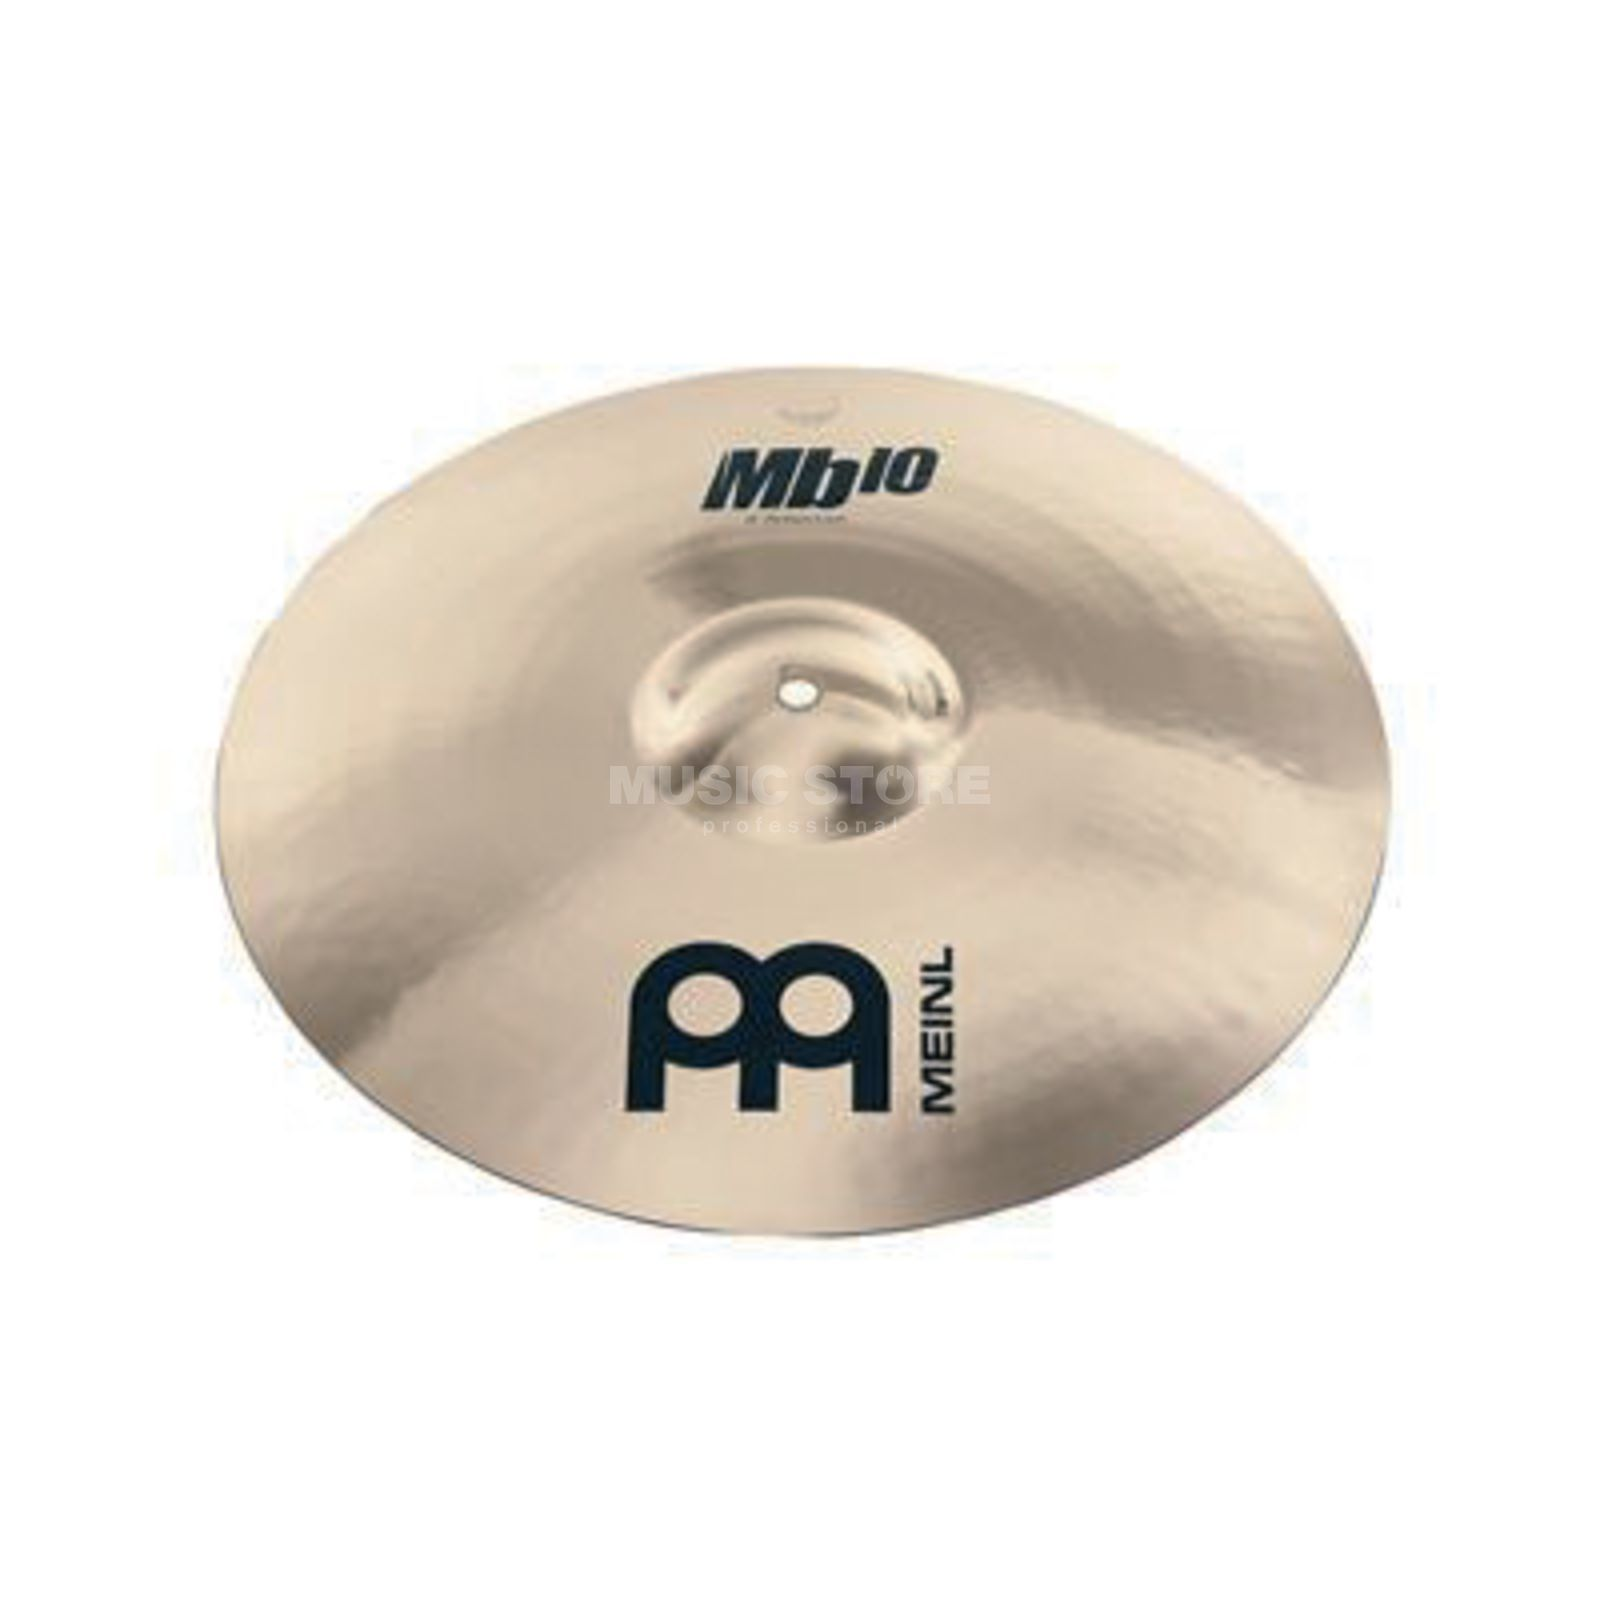 "Meinl MB10 Thin Crash 16"" MB10-16TC-B, Brilliant Finish Zdjęcie produktu"